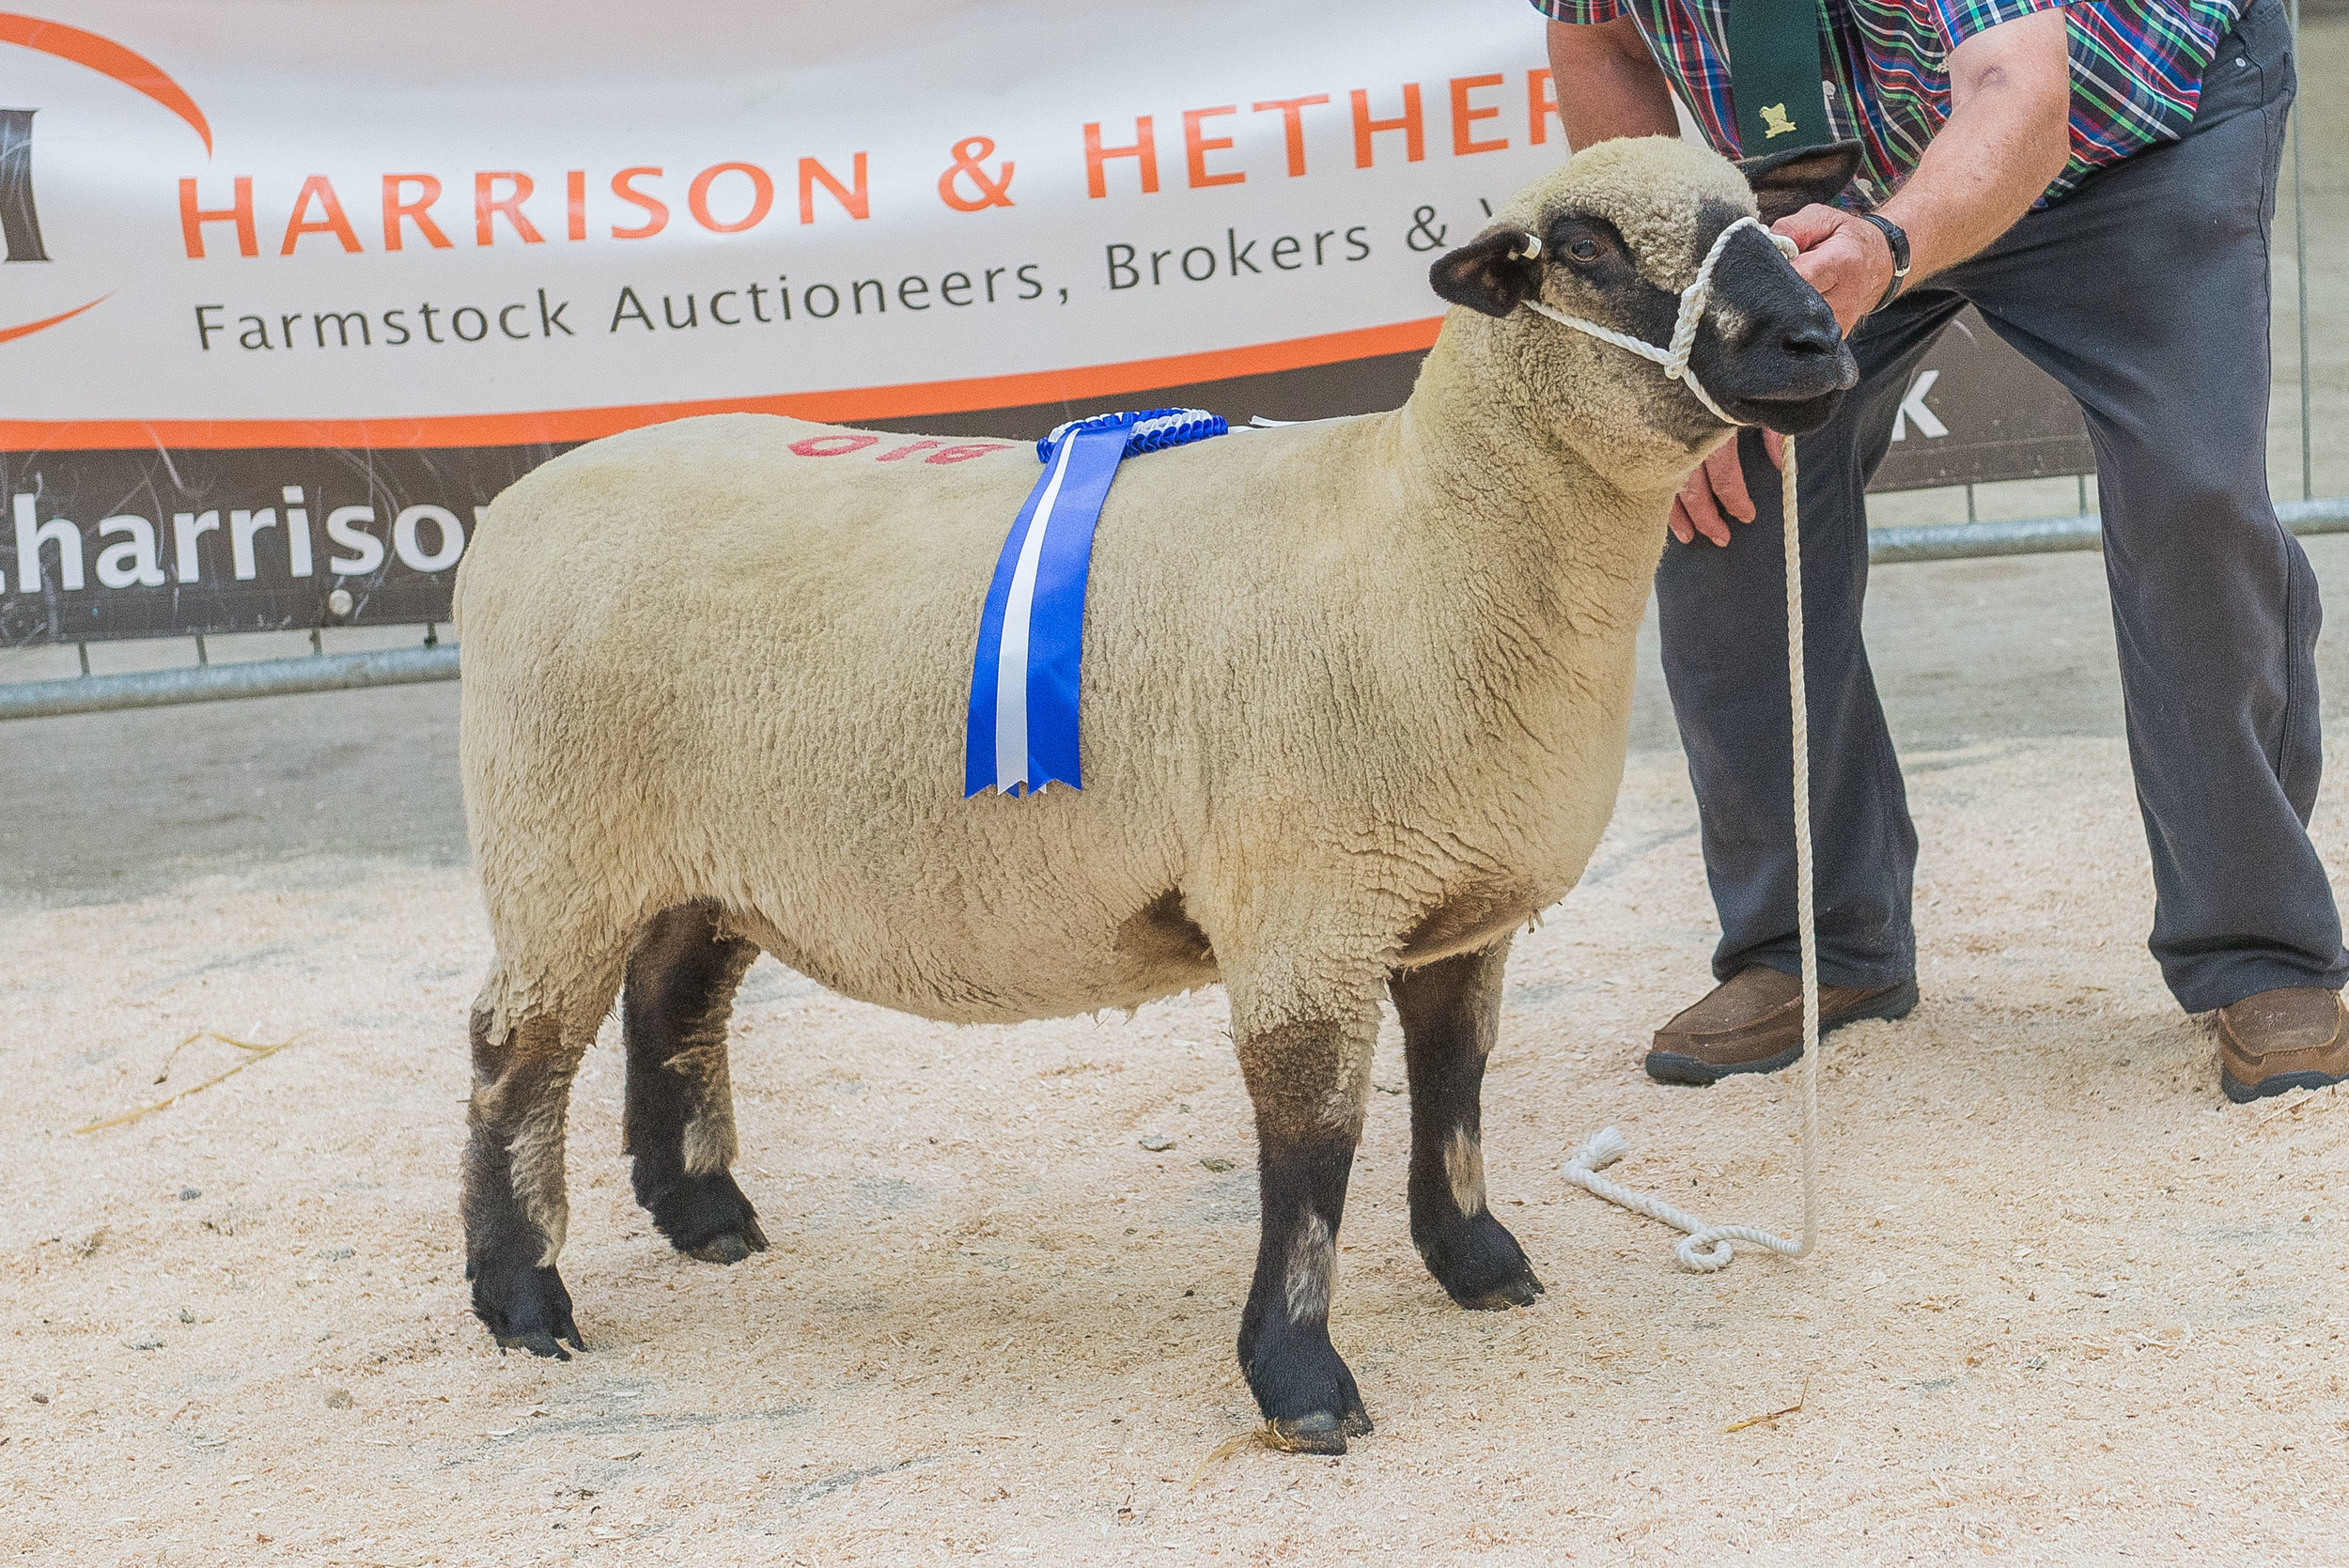 Reserve Champion, one-crop ewe from E J Cresswell's Wattisfield Flock, by Westland Domino